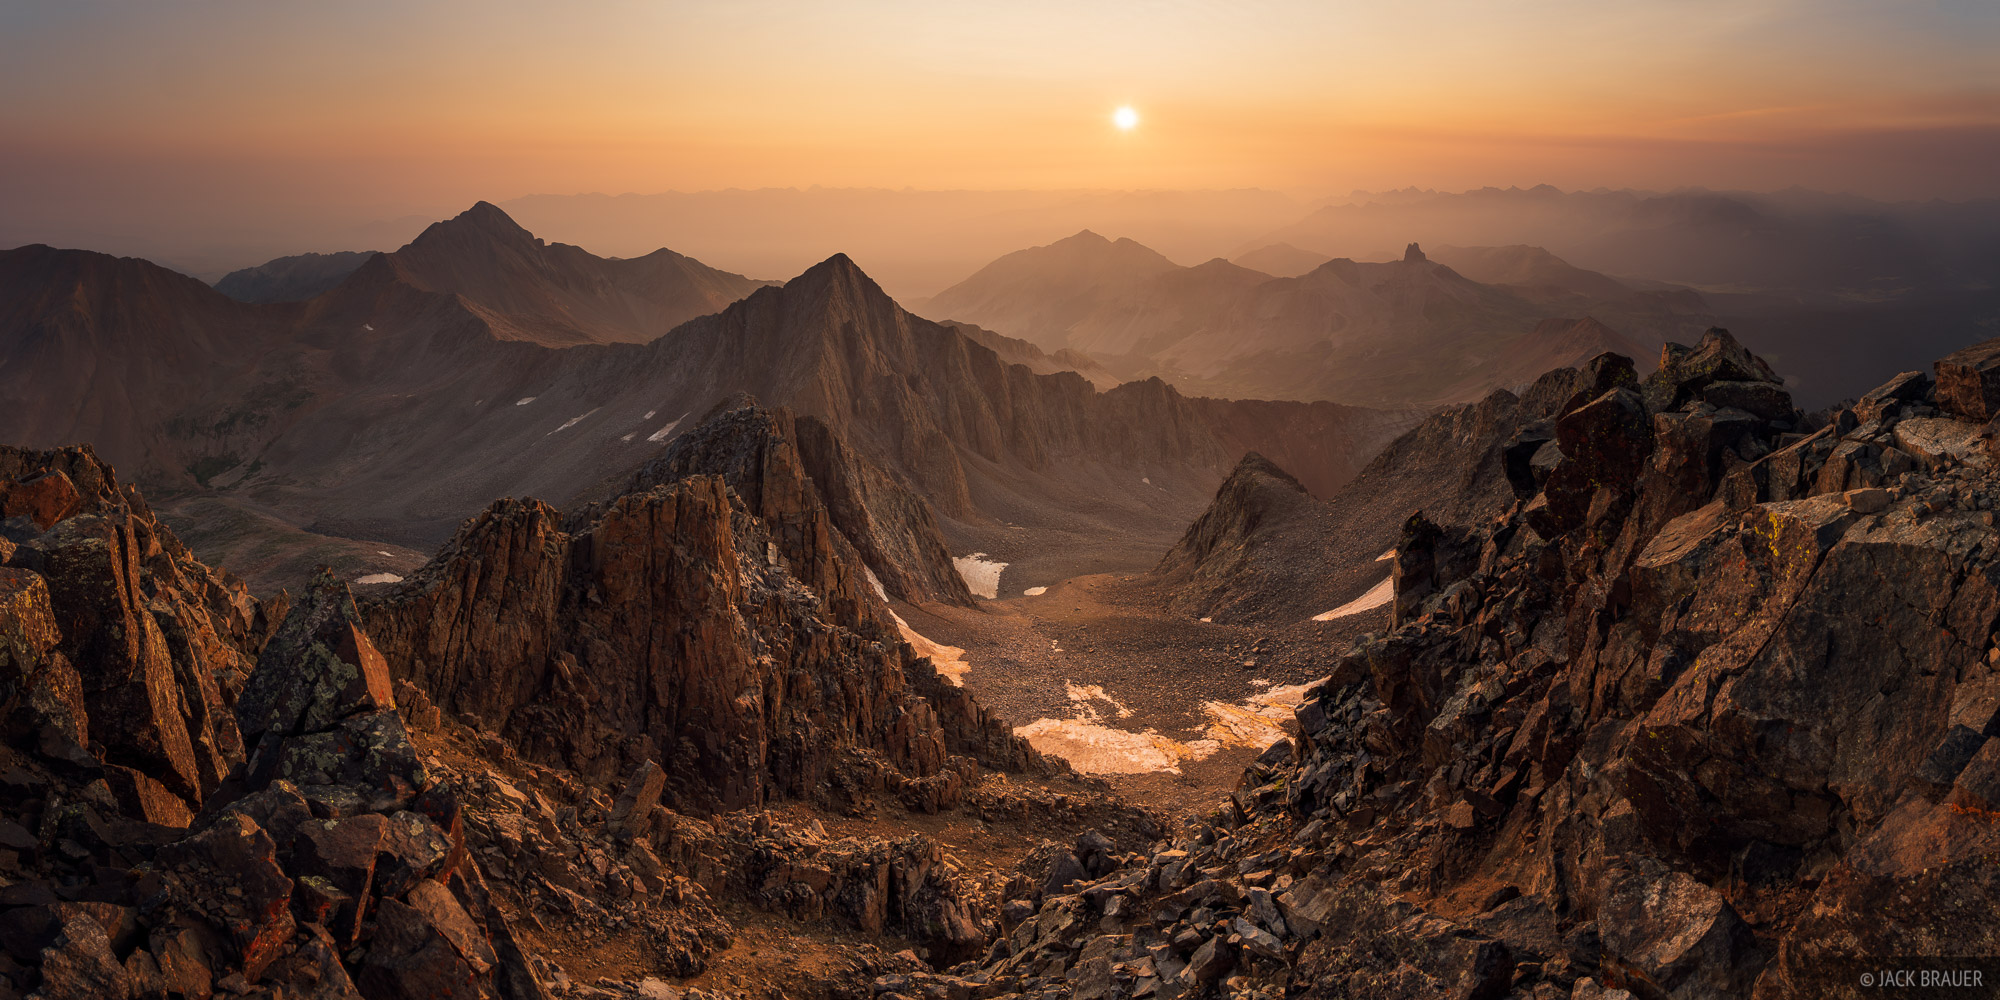 Colorado, Gladstone Peak, Lizard Head Wilderness, Mount Wilson, San Juan Mountains, Wilson Peak, wildfire, smoke, smoky, sunrise, photo